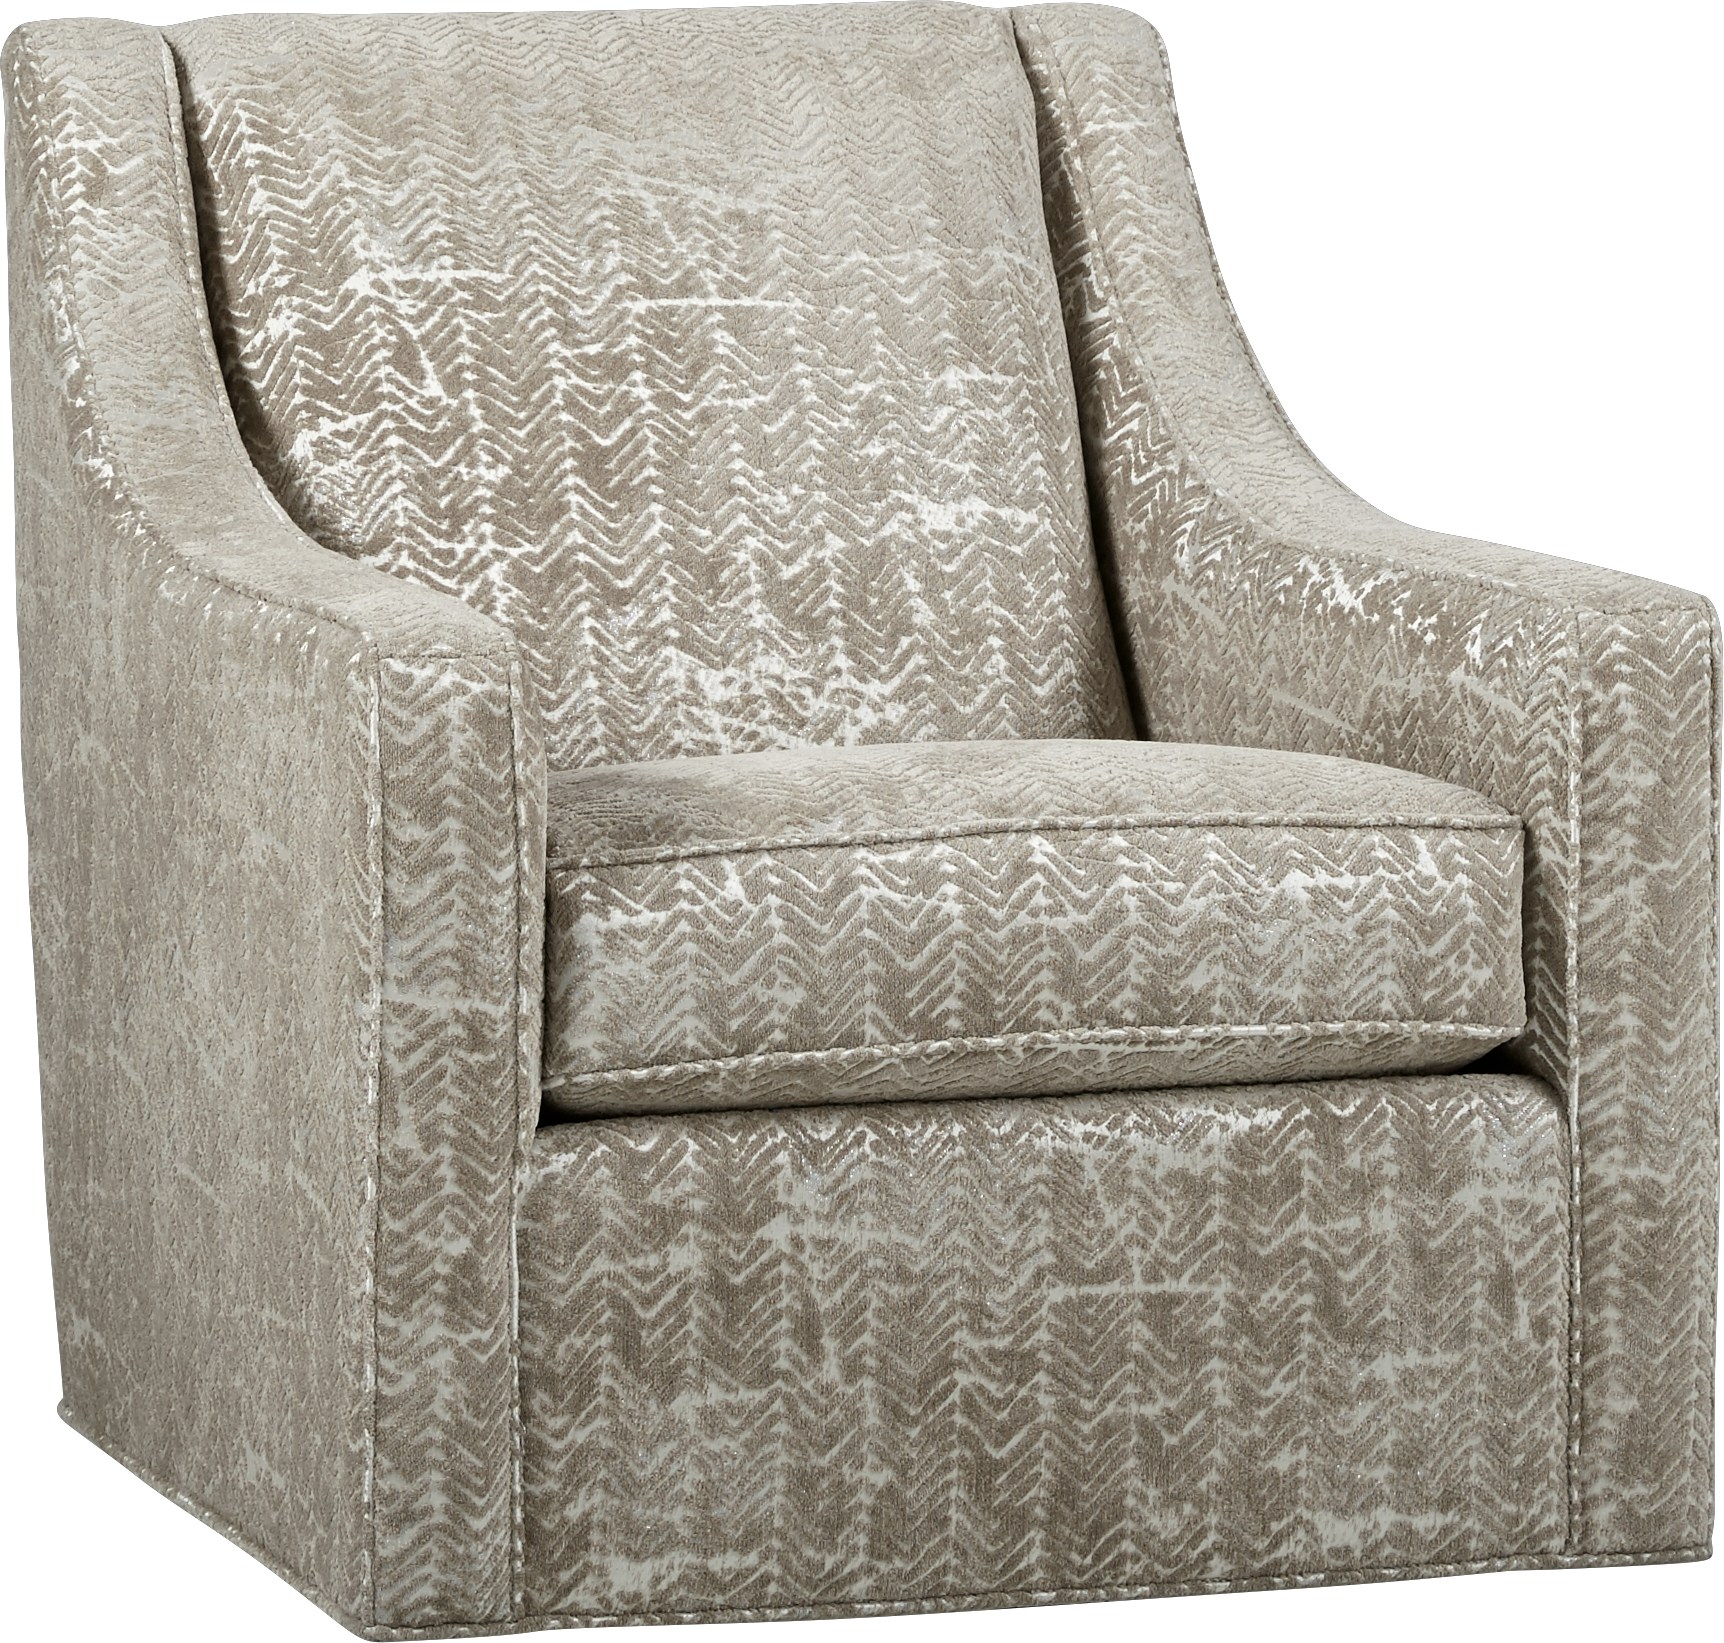 Cindy Crawford Home Pacific Harbor Beige Accent Chair – Accent Regarding Harbor Grey Swivel Accent Chairs (Image 6 of 20)